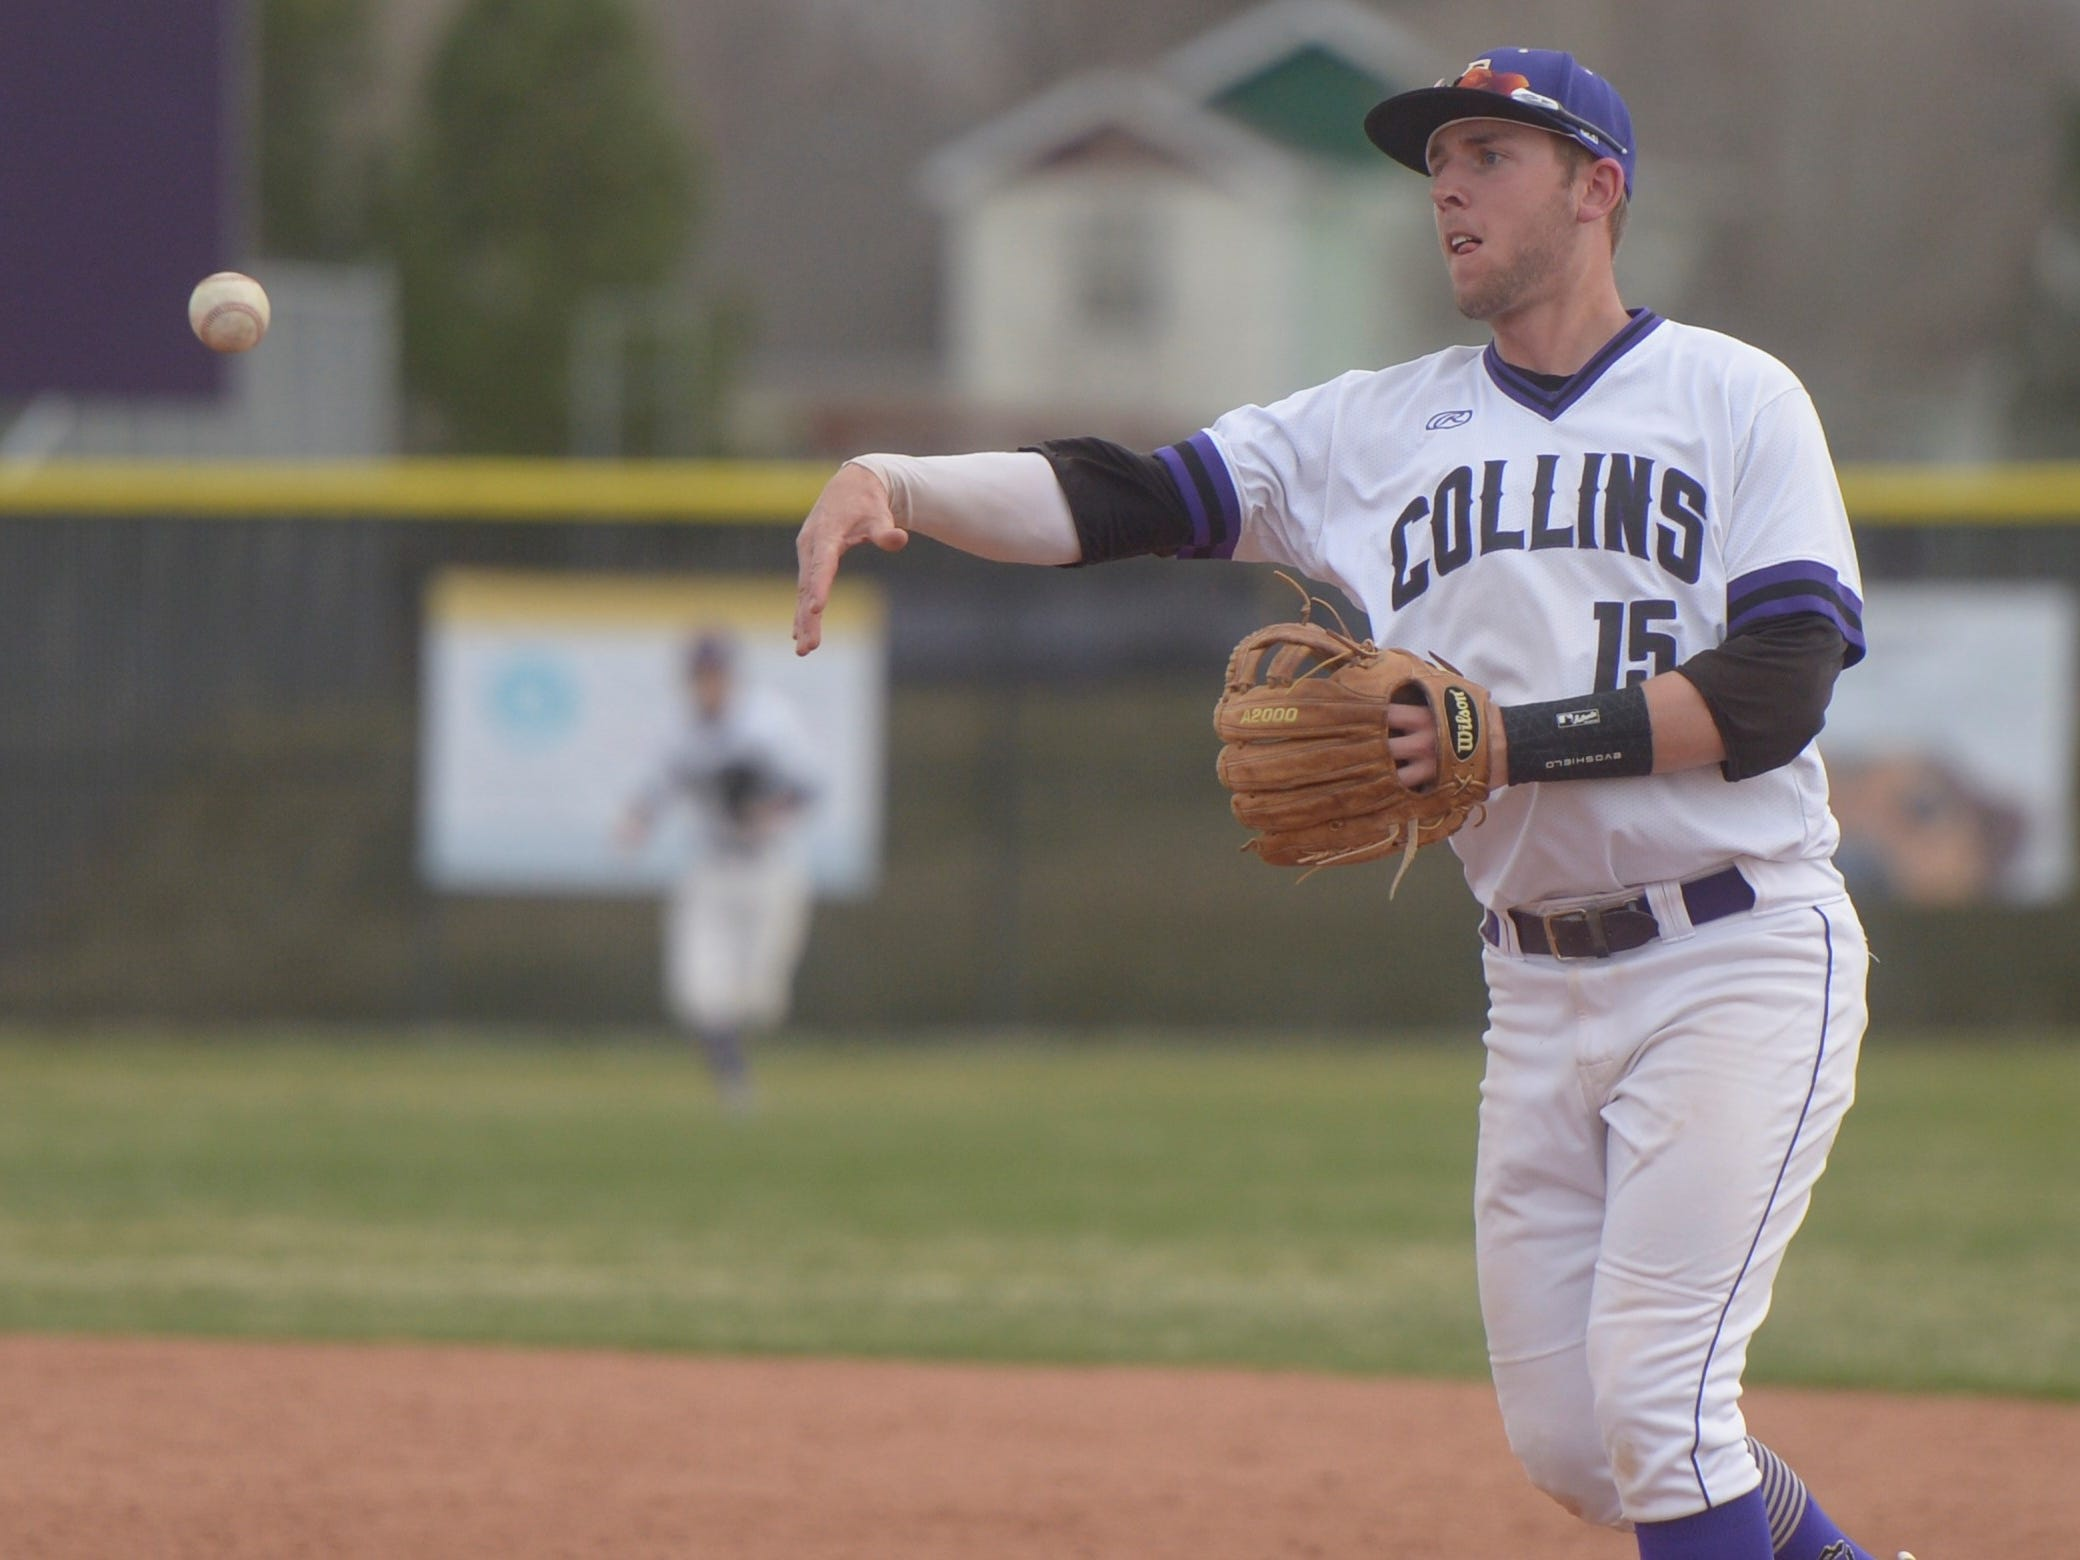 Fort Collins High School baseball second baseman Caleb Brlecic throws to first during a game against Denver South on Monday, April 8, 2019. The Lambkins won 13-3 to move to 10-0 on the season.